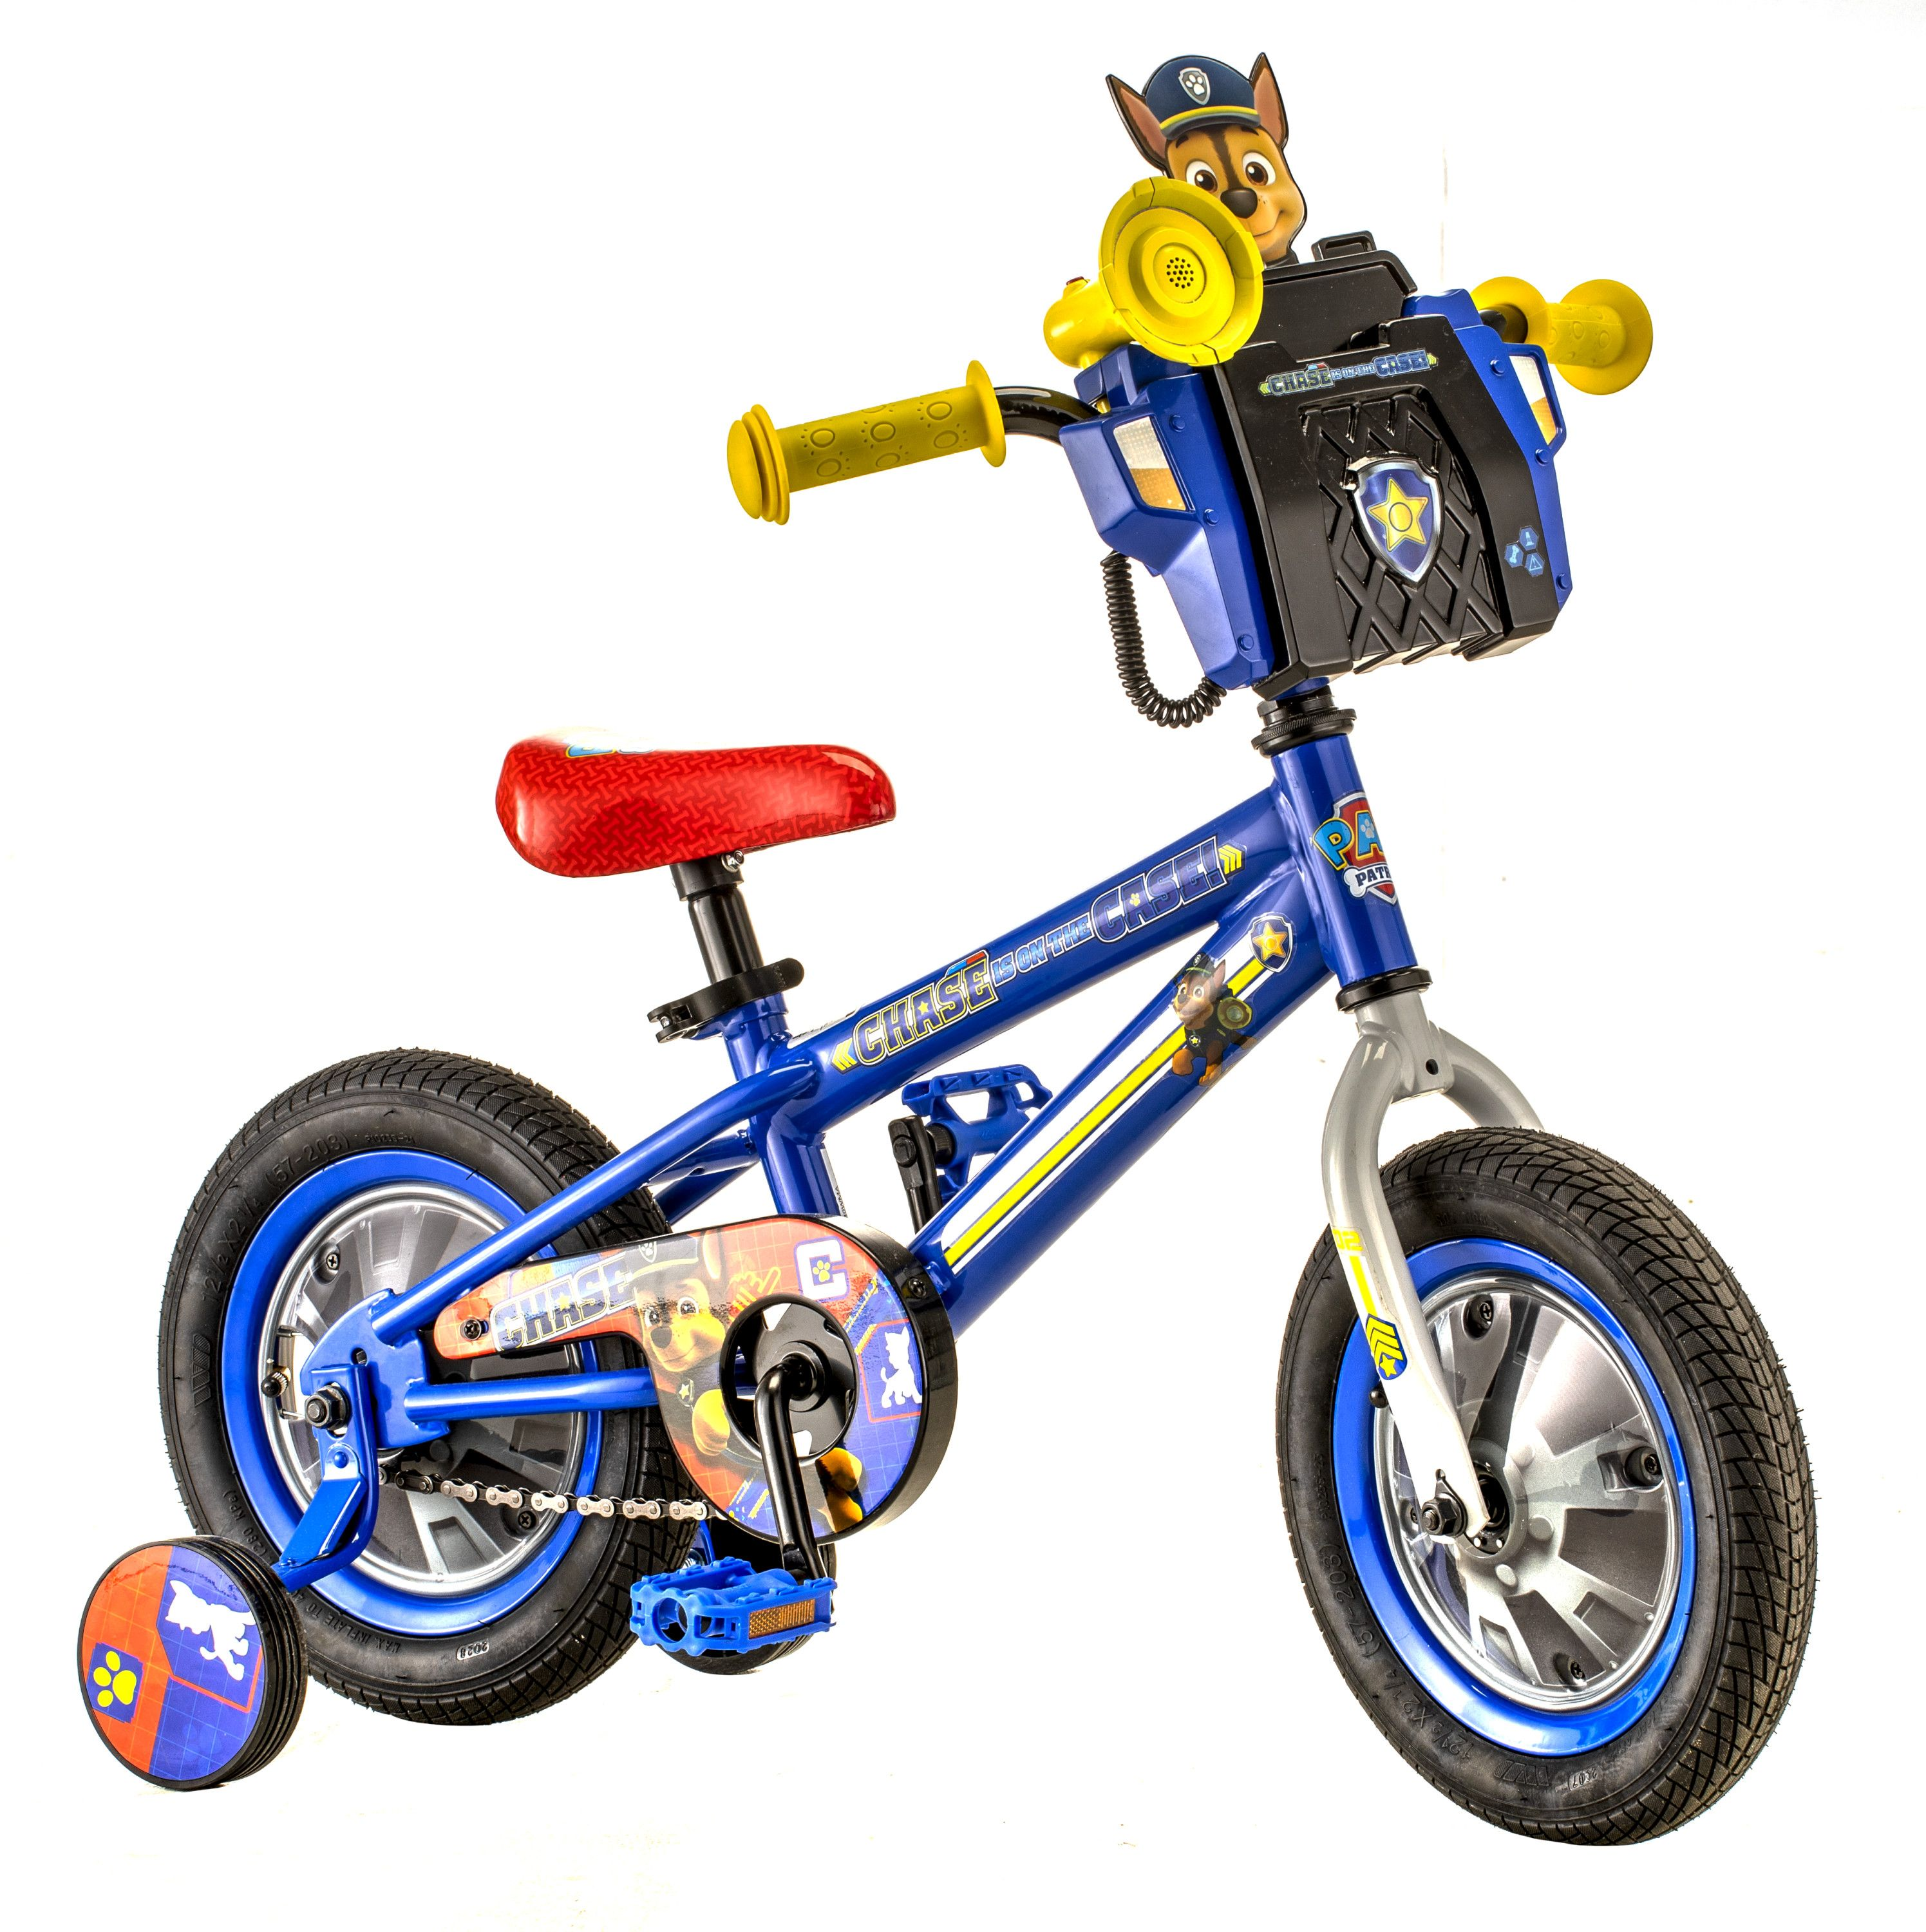 12 Inch Boys Bike with Training Wheels Children Kids Bicycle Riding Single Speed